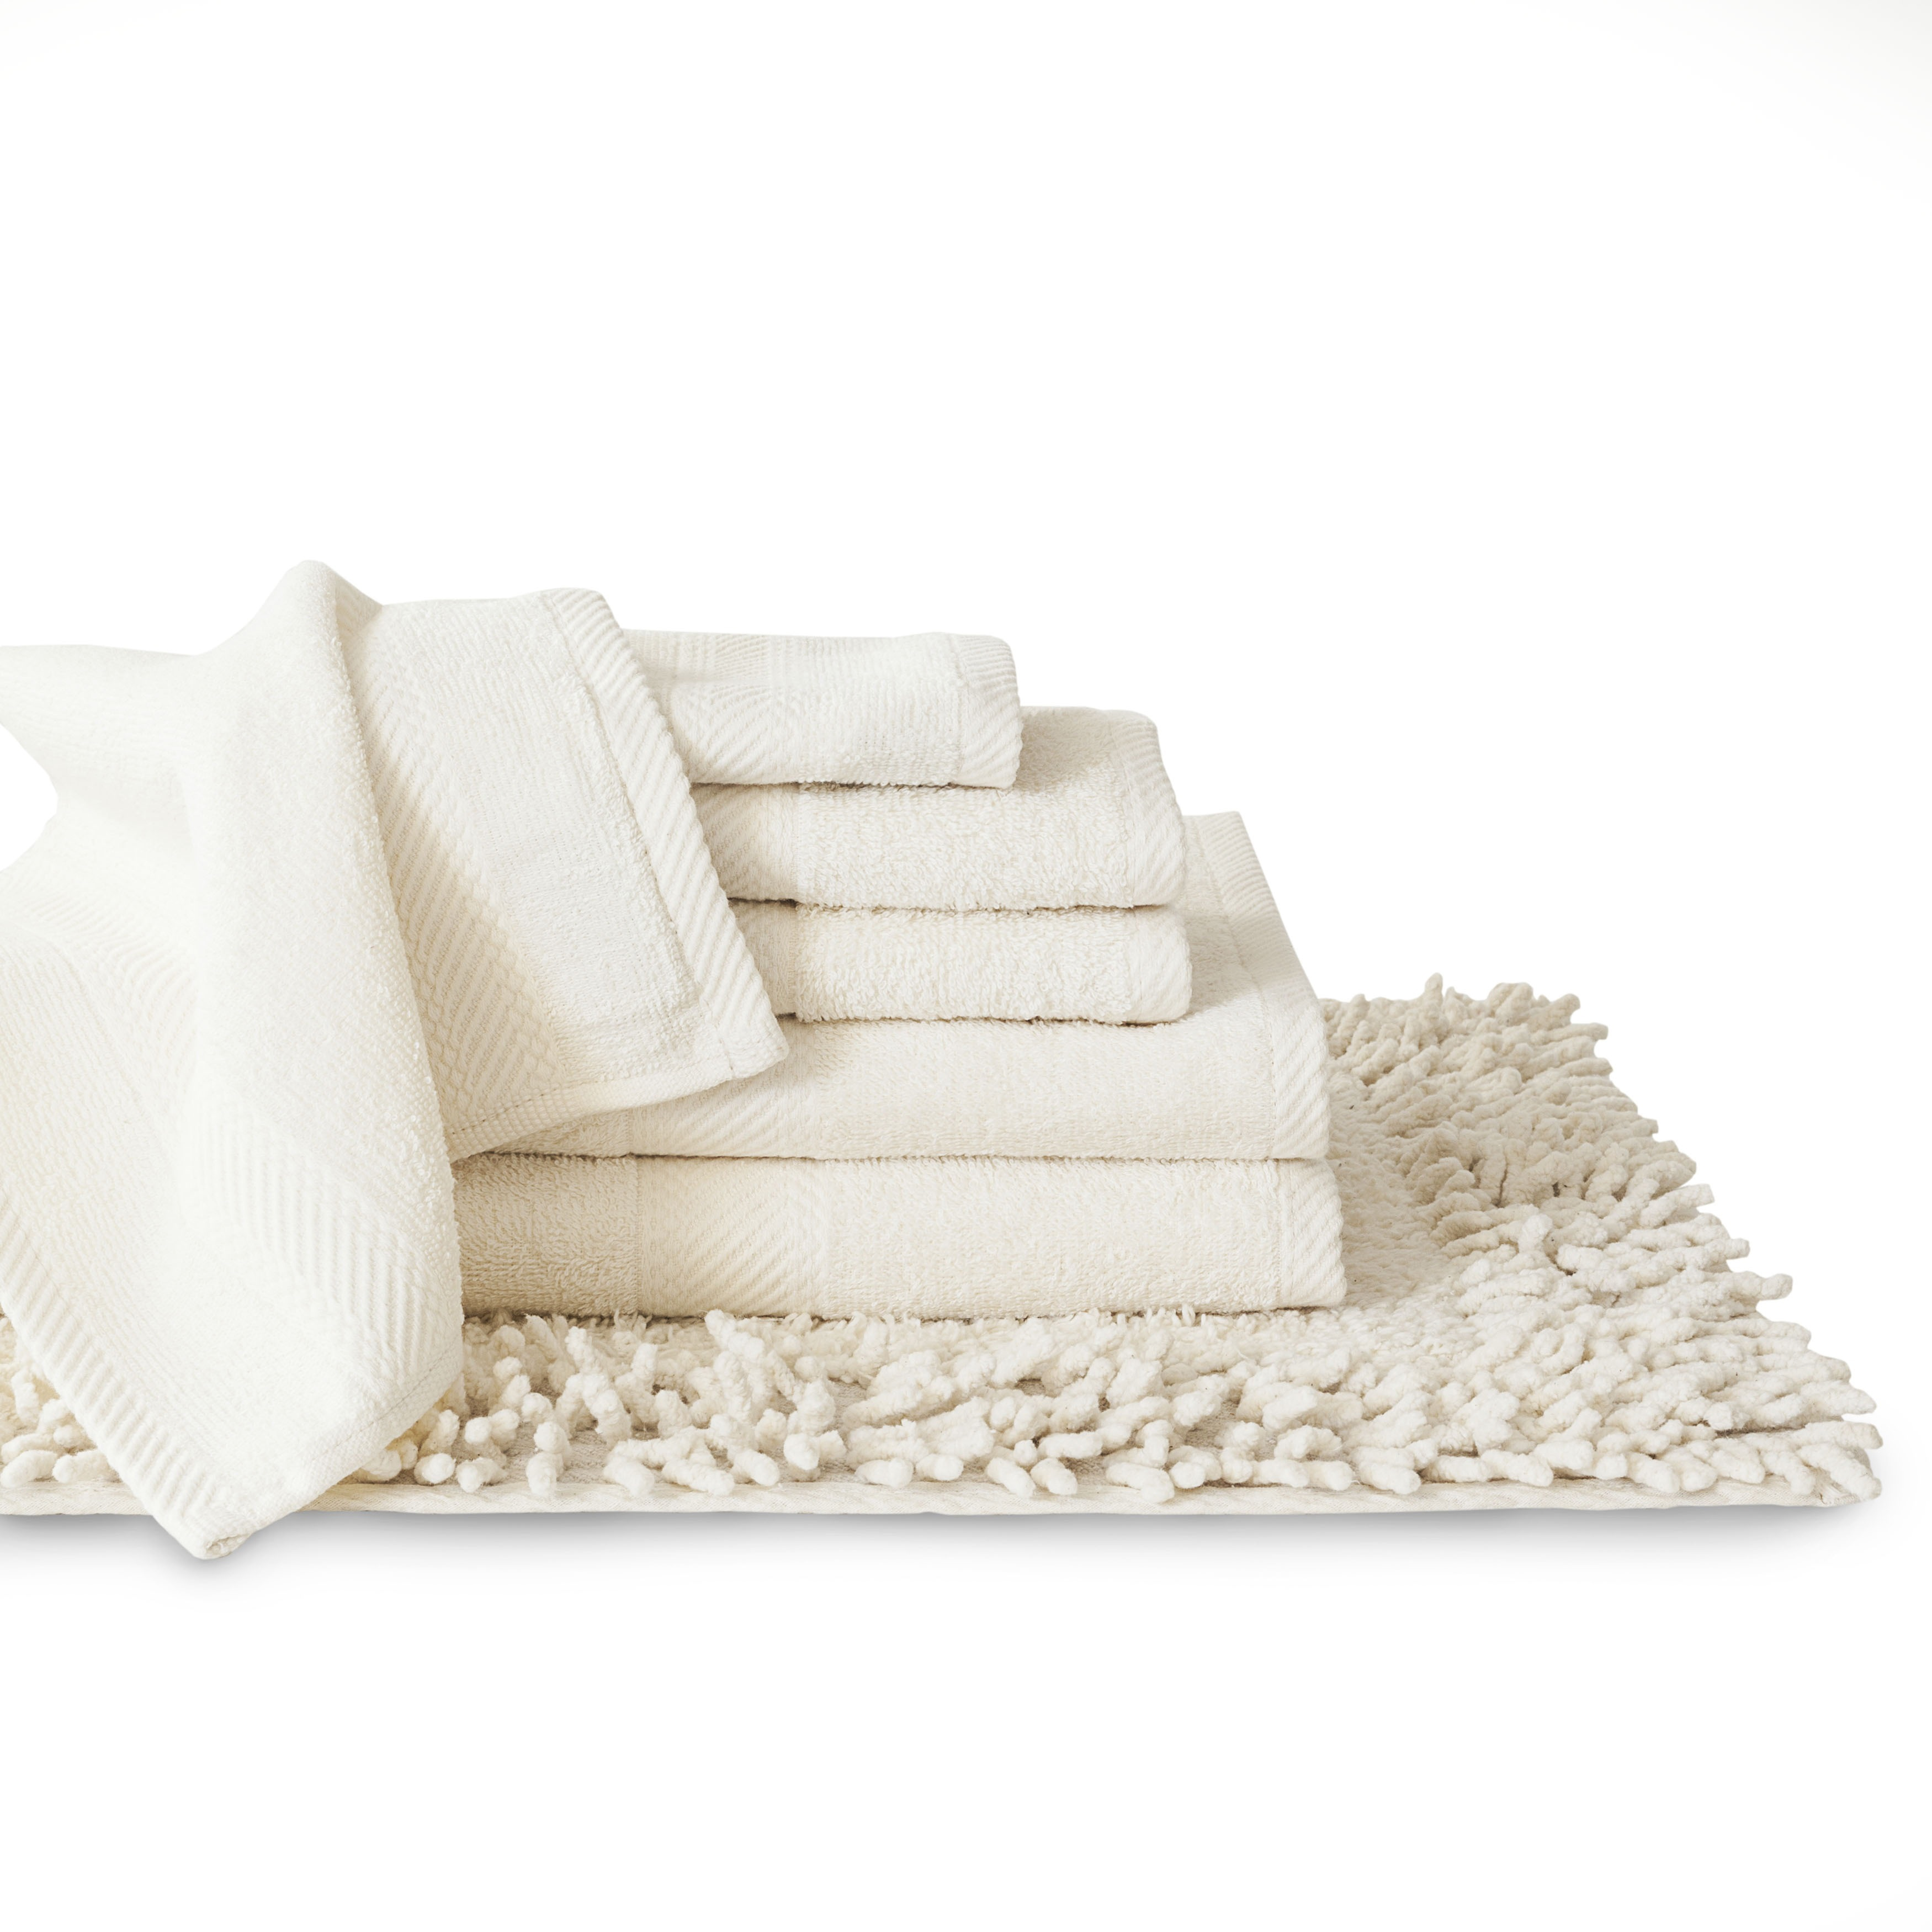 Cotton 7 Piece Matching Towel And Bath Rug Set   On Sale   Free Shipping On  Orders Over $45   Overstock   16269806